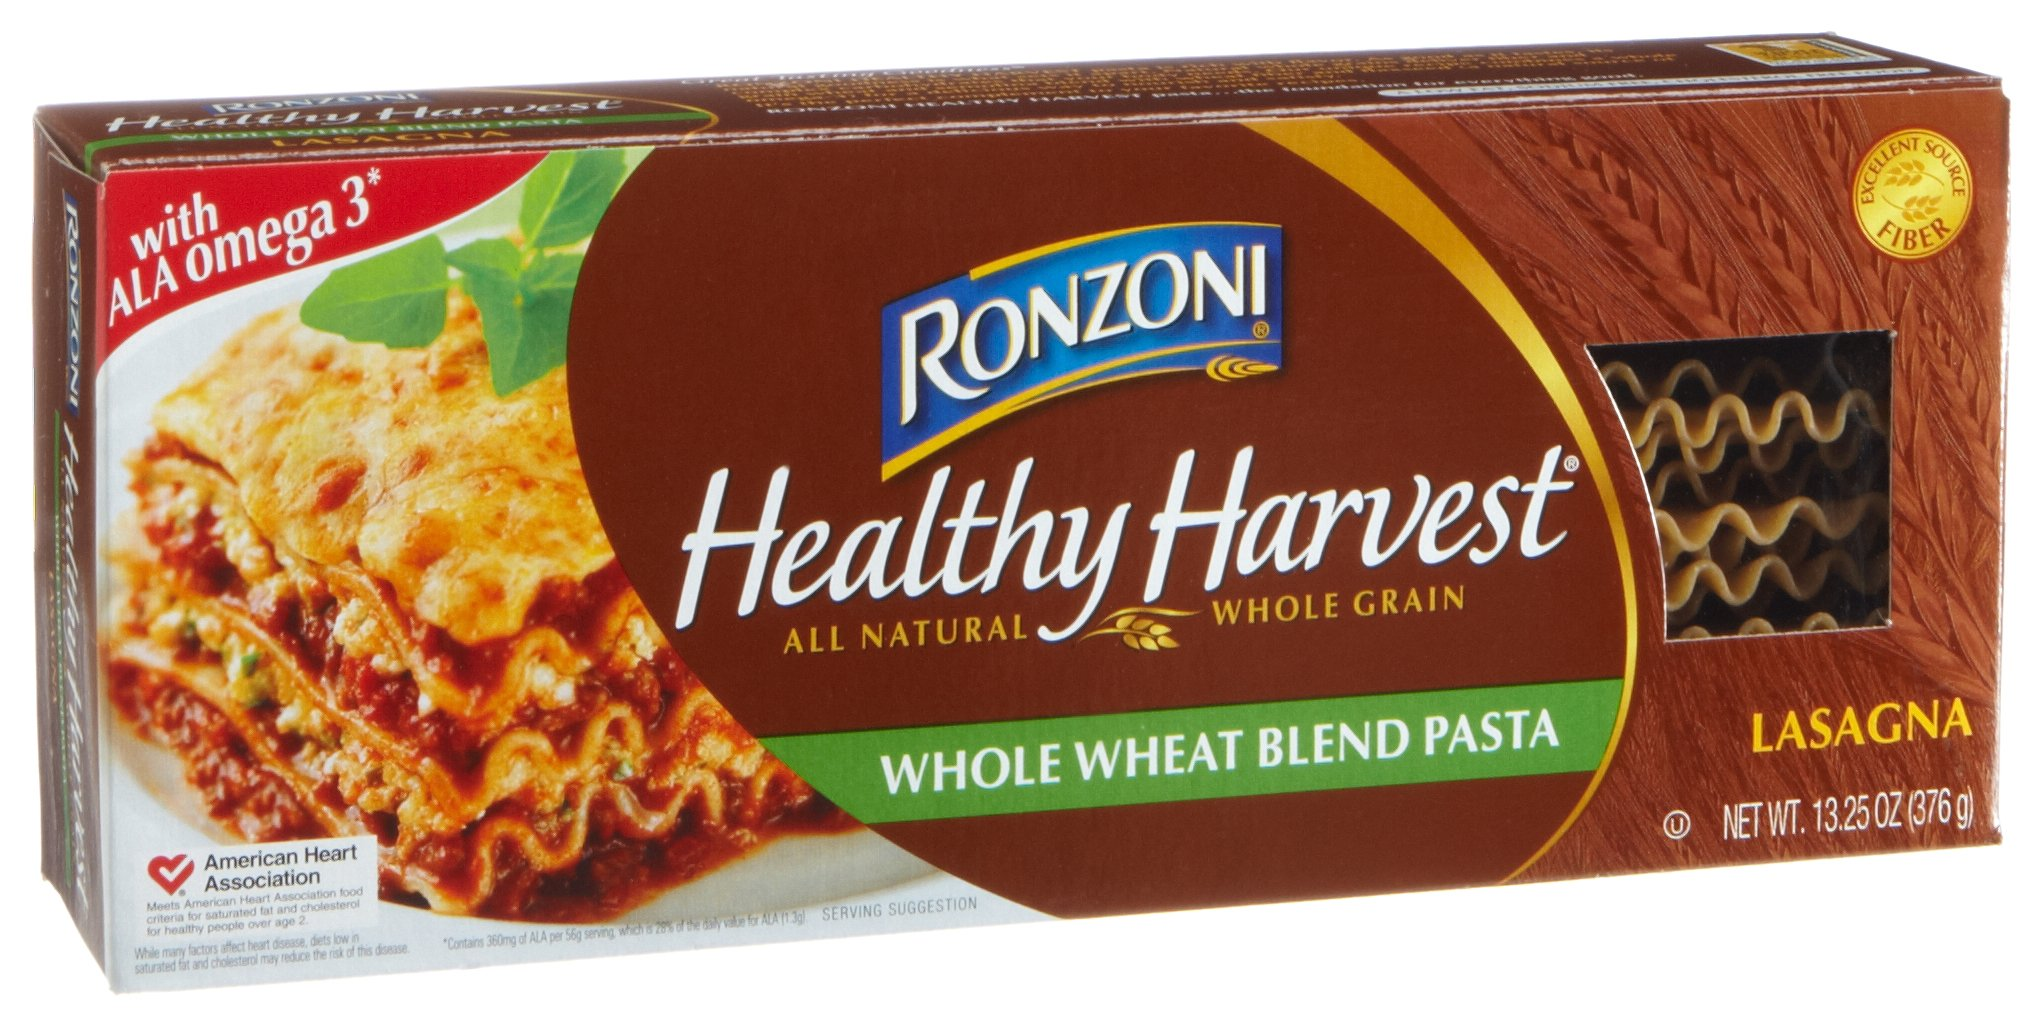 Ronzoni Healthy Harvest Whole Wheat Blend Pasta, Lasagna, 13.25-Ounce Boxes (Pack of 6)